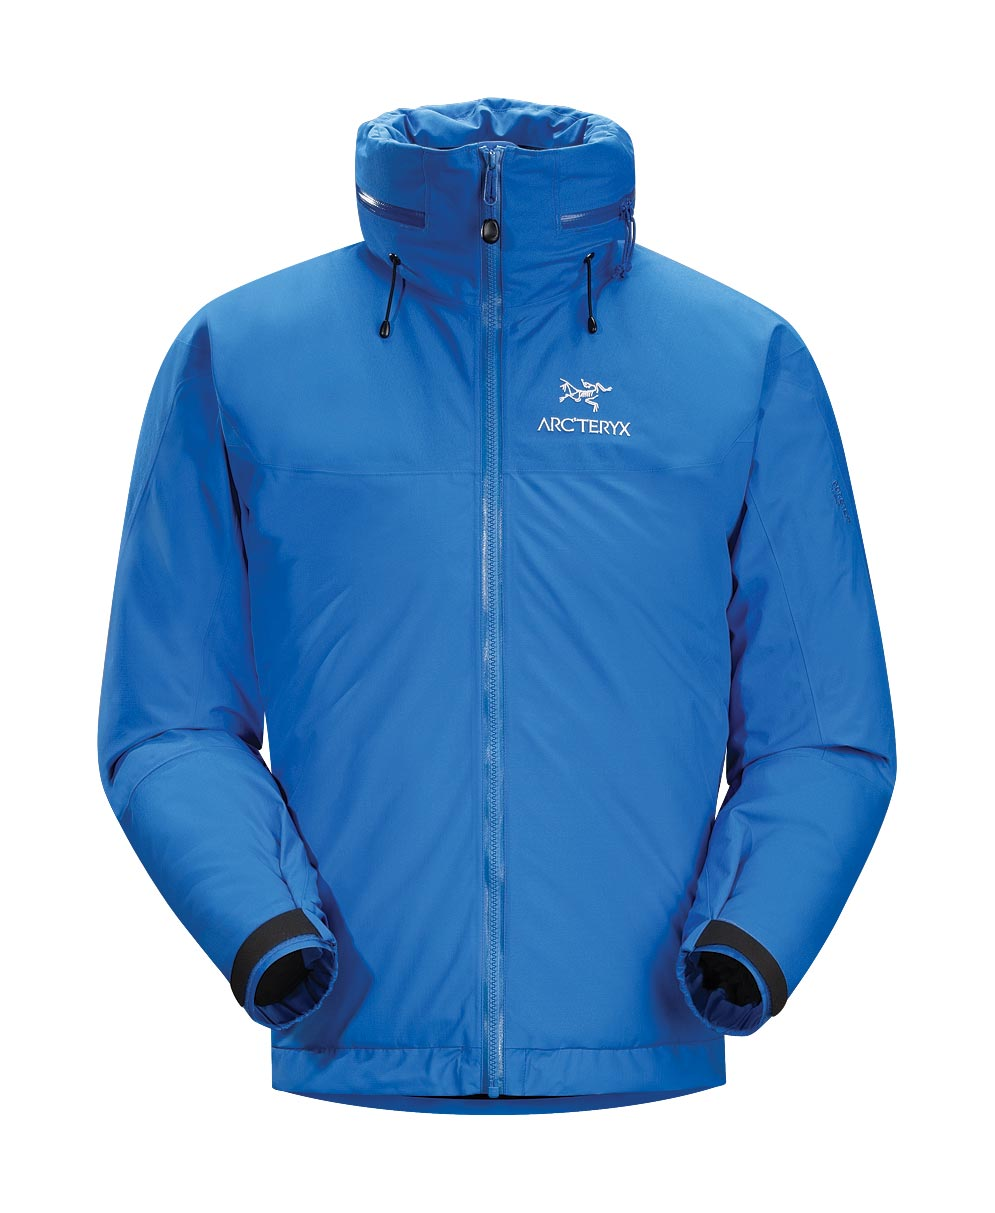 Arcteryx Jackets Men Blue Ray Fission AR Jacket